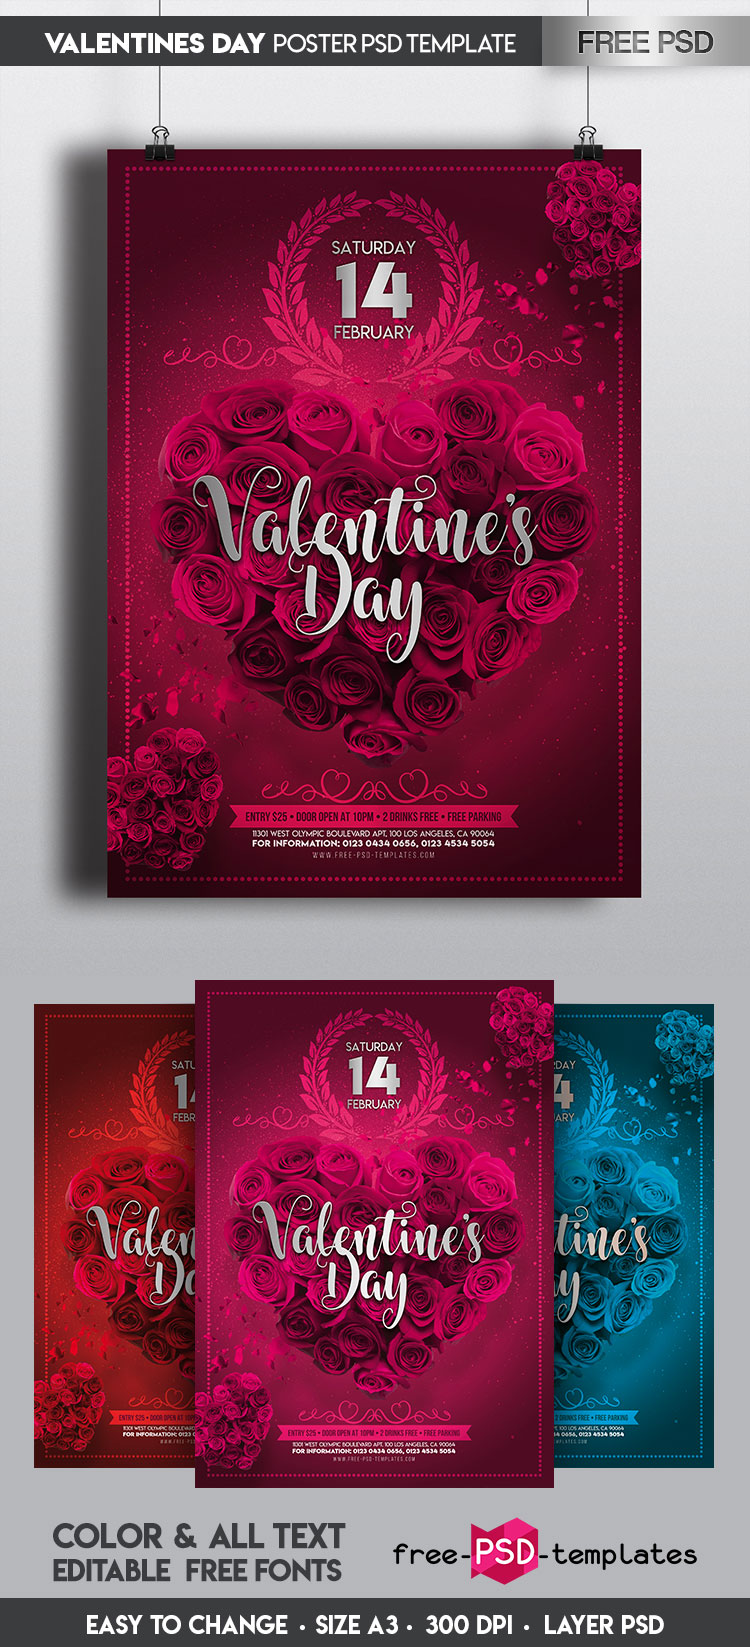 Free Psd Flyer Template: Free Valentine's Day Poster IN PSD